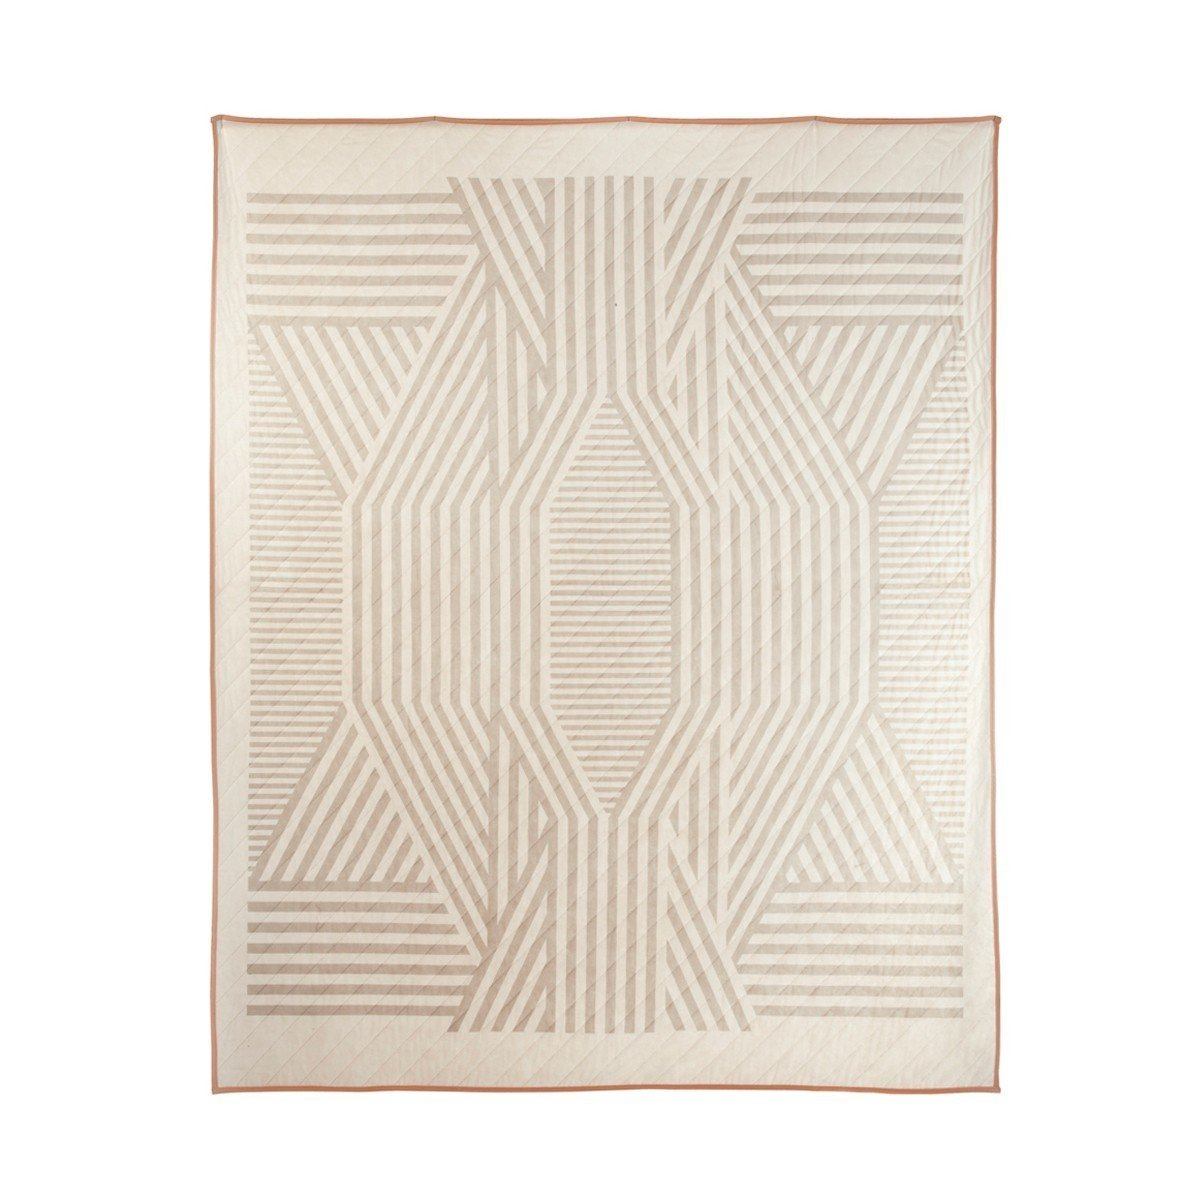 """The ADA Quilt—another Meg Callahan collaboration, though with MatterMade—features another geometric design rendered in subtle neutral tones.  Search """"memoriam ada louise huxtable"""" from Modern Quilts for Winter"""